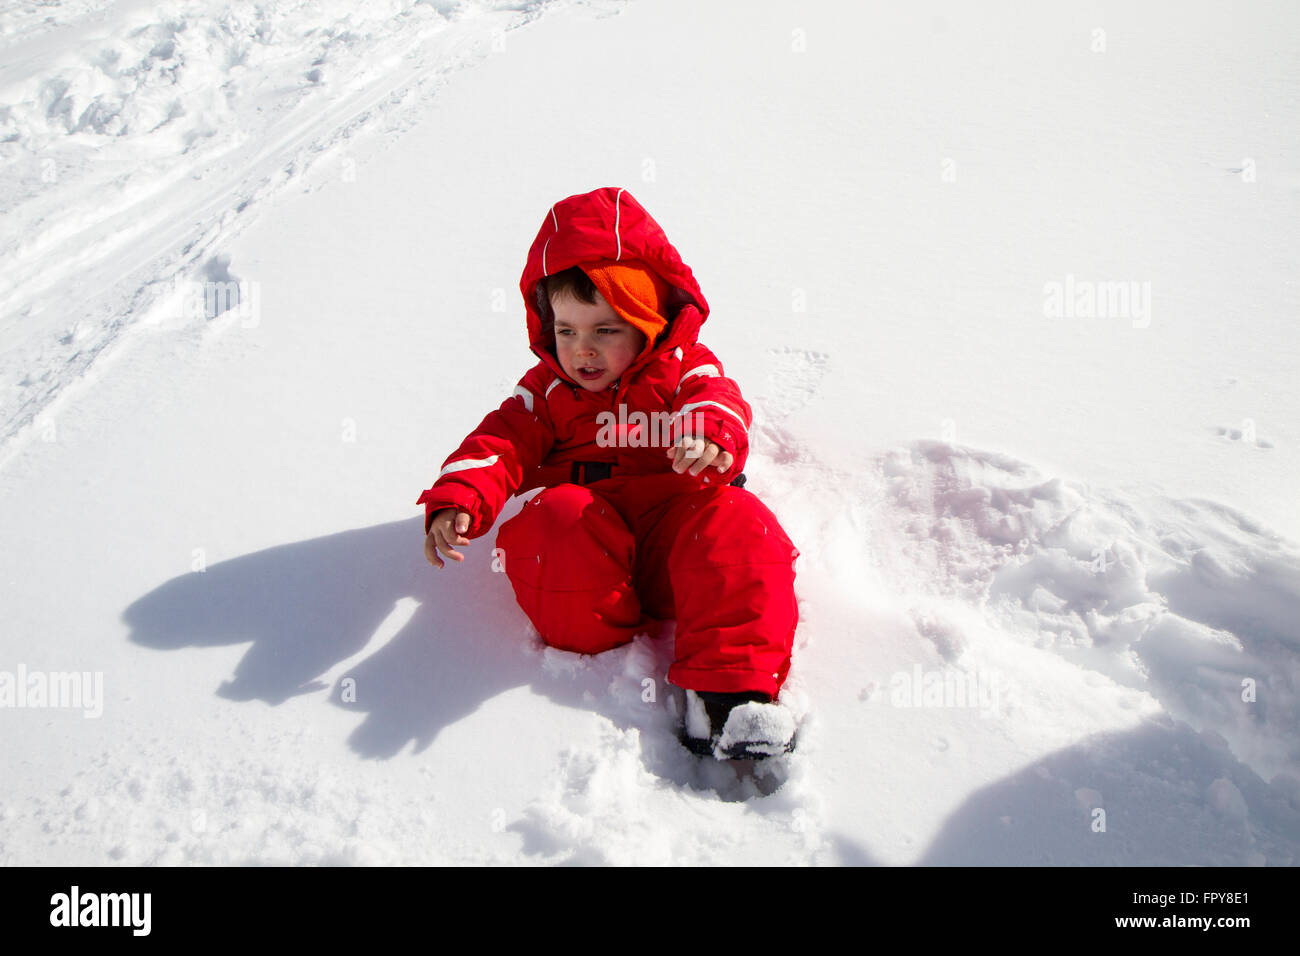 close up child with red ski suit in the snow - Stock Image